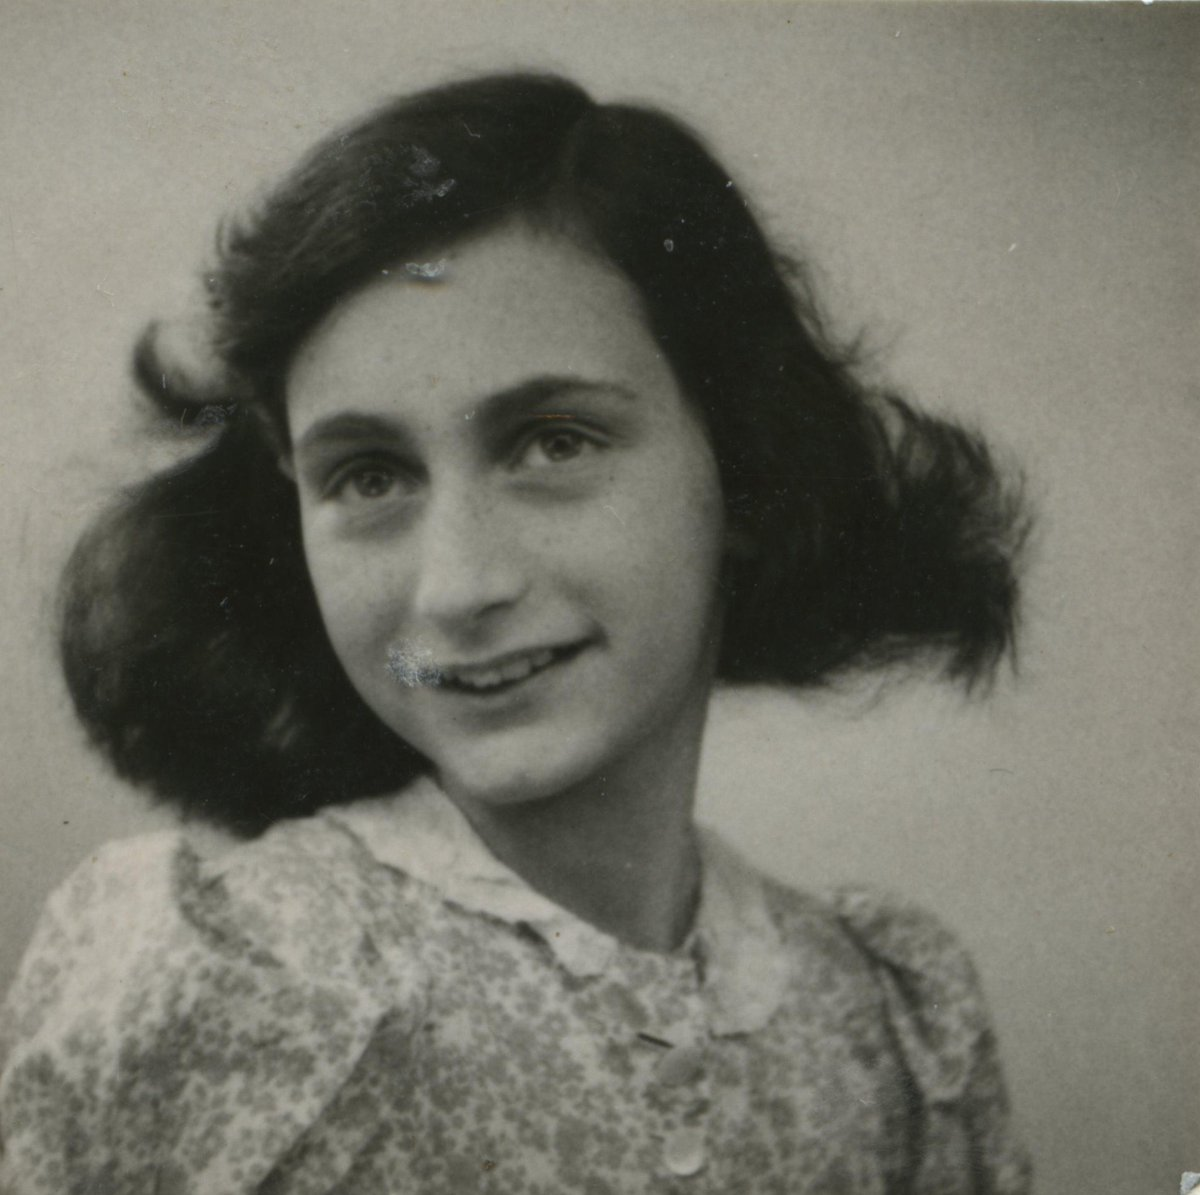 """""""People can tell you to shut up, but they can't keep you from having an opinion.""""  Anne Frank, 2 March 1944 http://t.co/pfnz3iiYeh"""